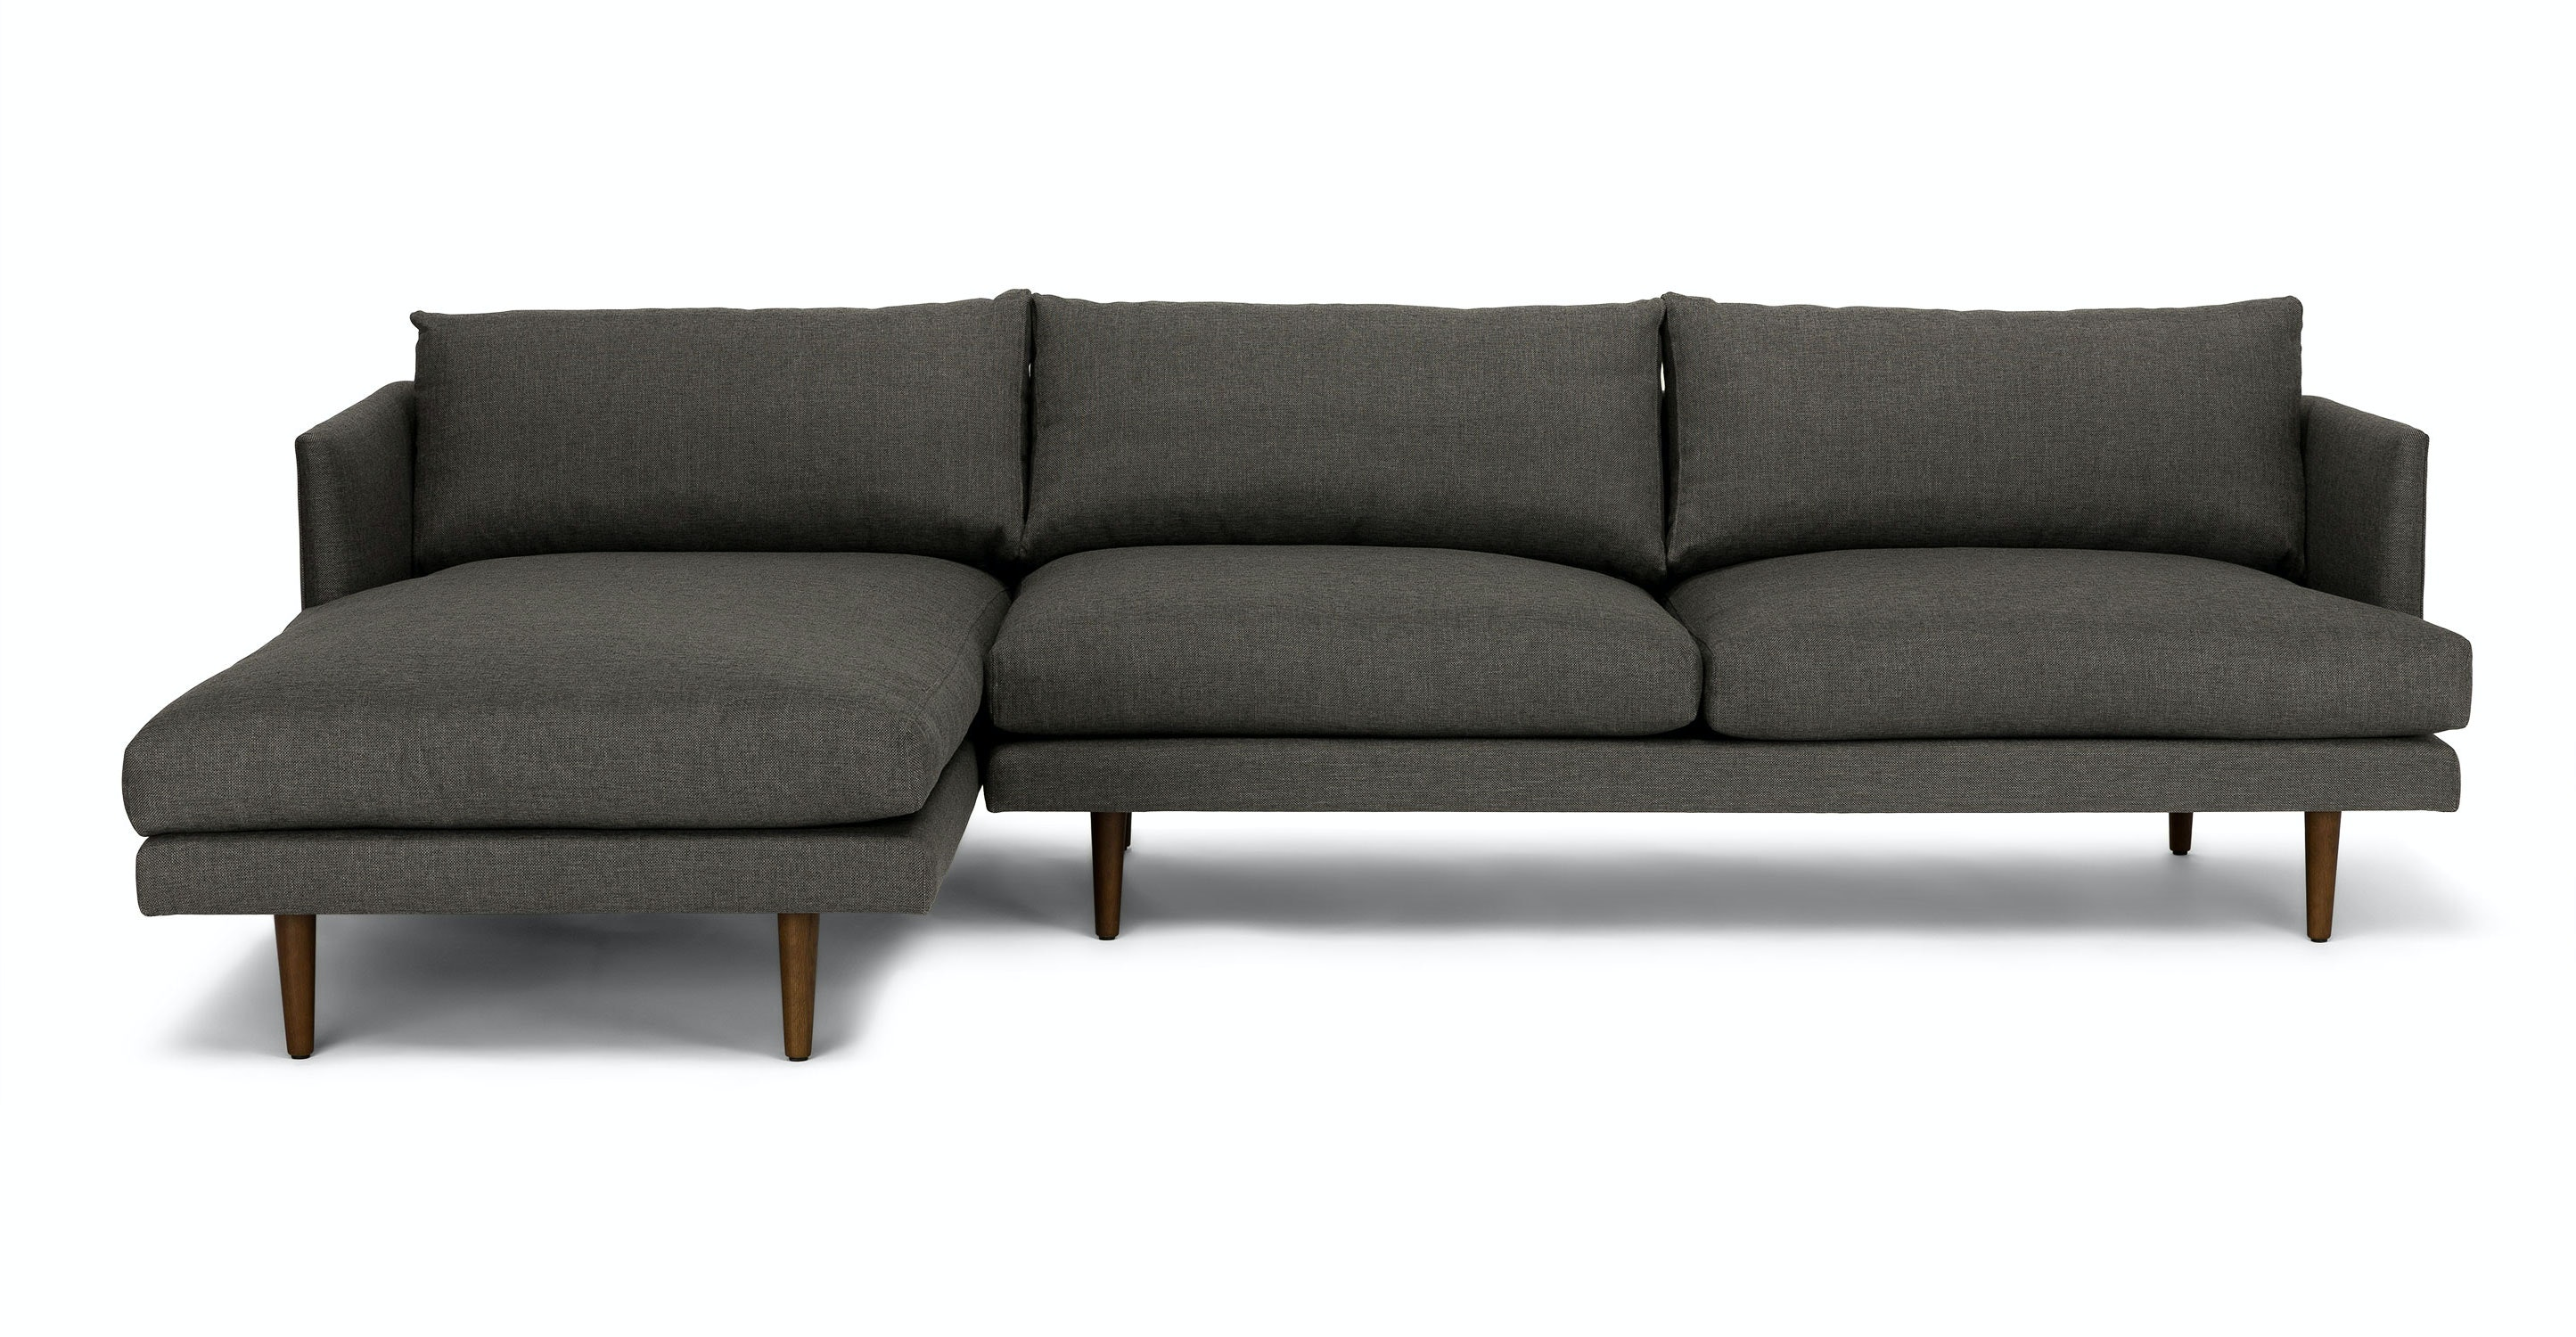 Peachy Dark Gray Left Sectional Sofa Upholstered Article Burrard Modern Furniture Gamerscity Chair Design For Home Gamerscityorg